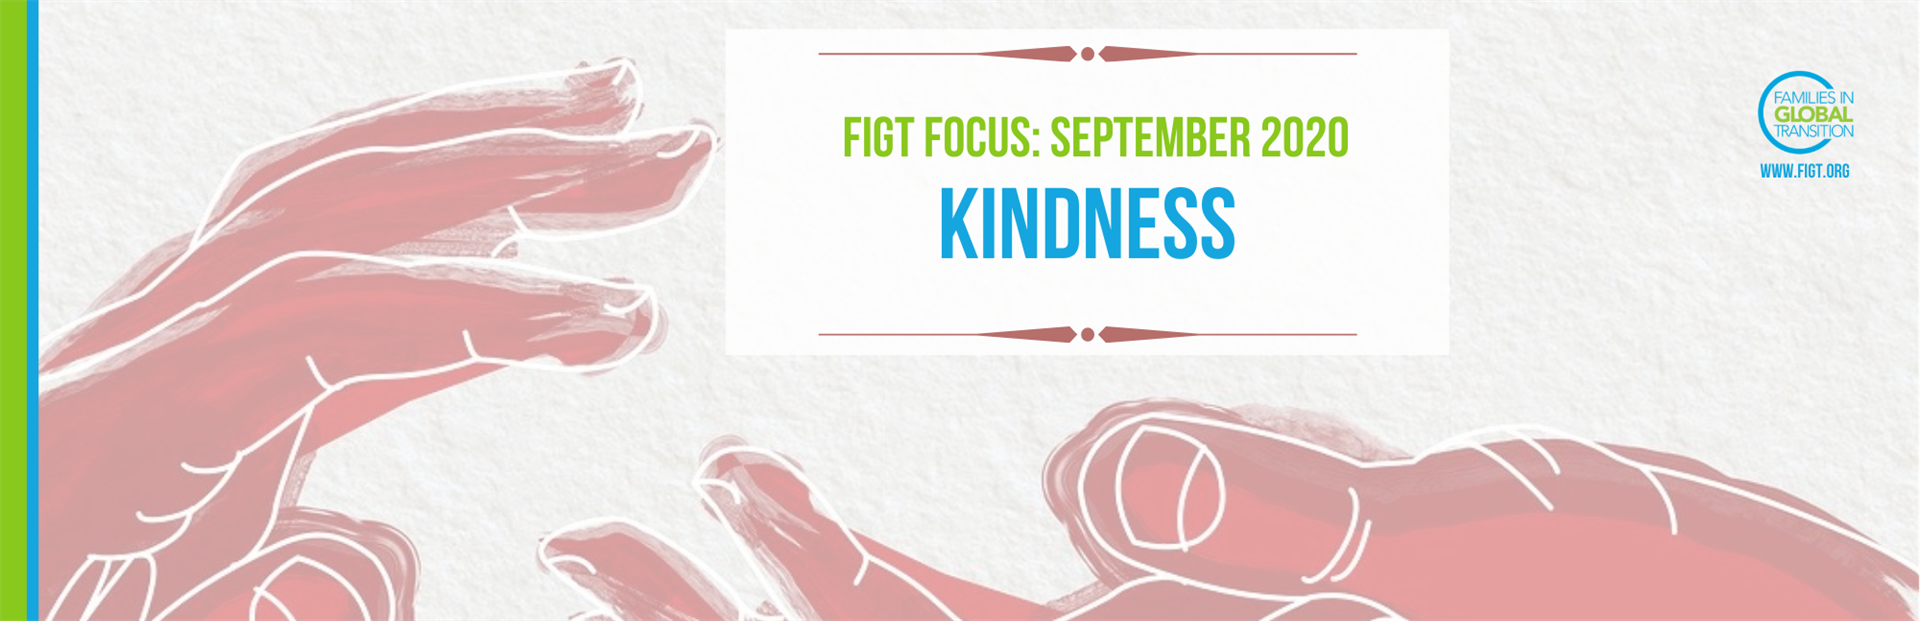 Title of the blog. FIGT Focus September 2020 Kindness